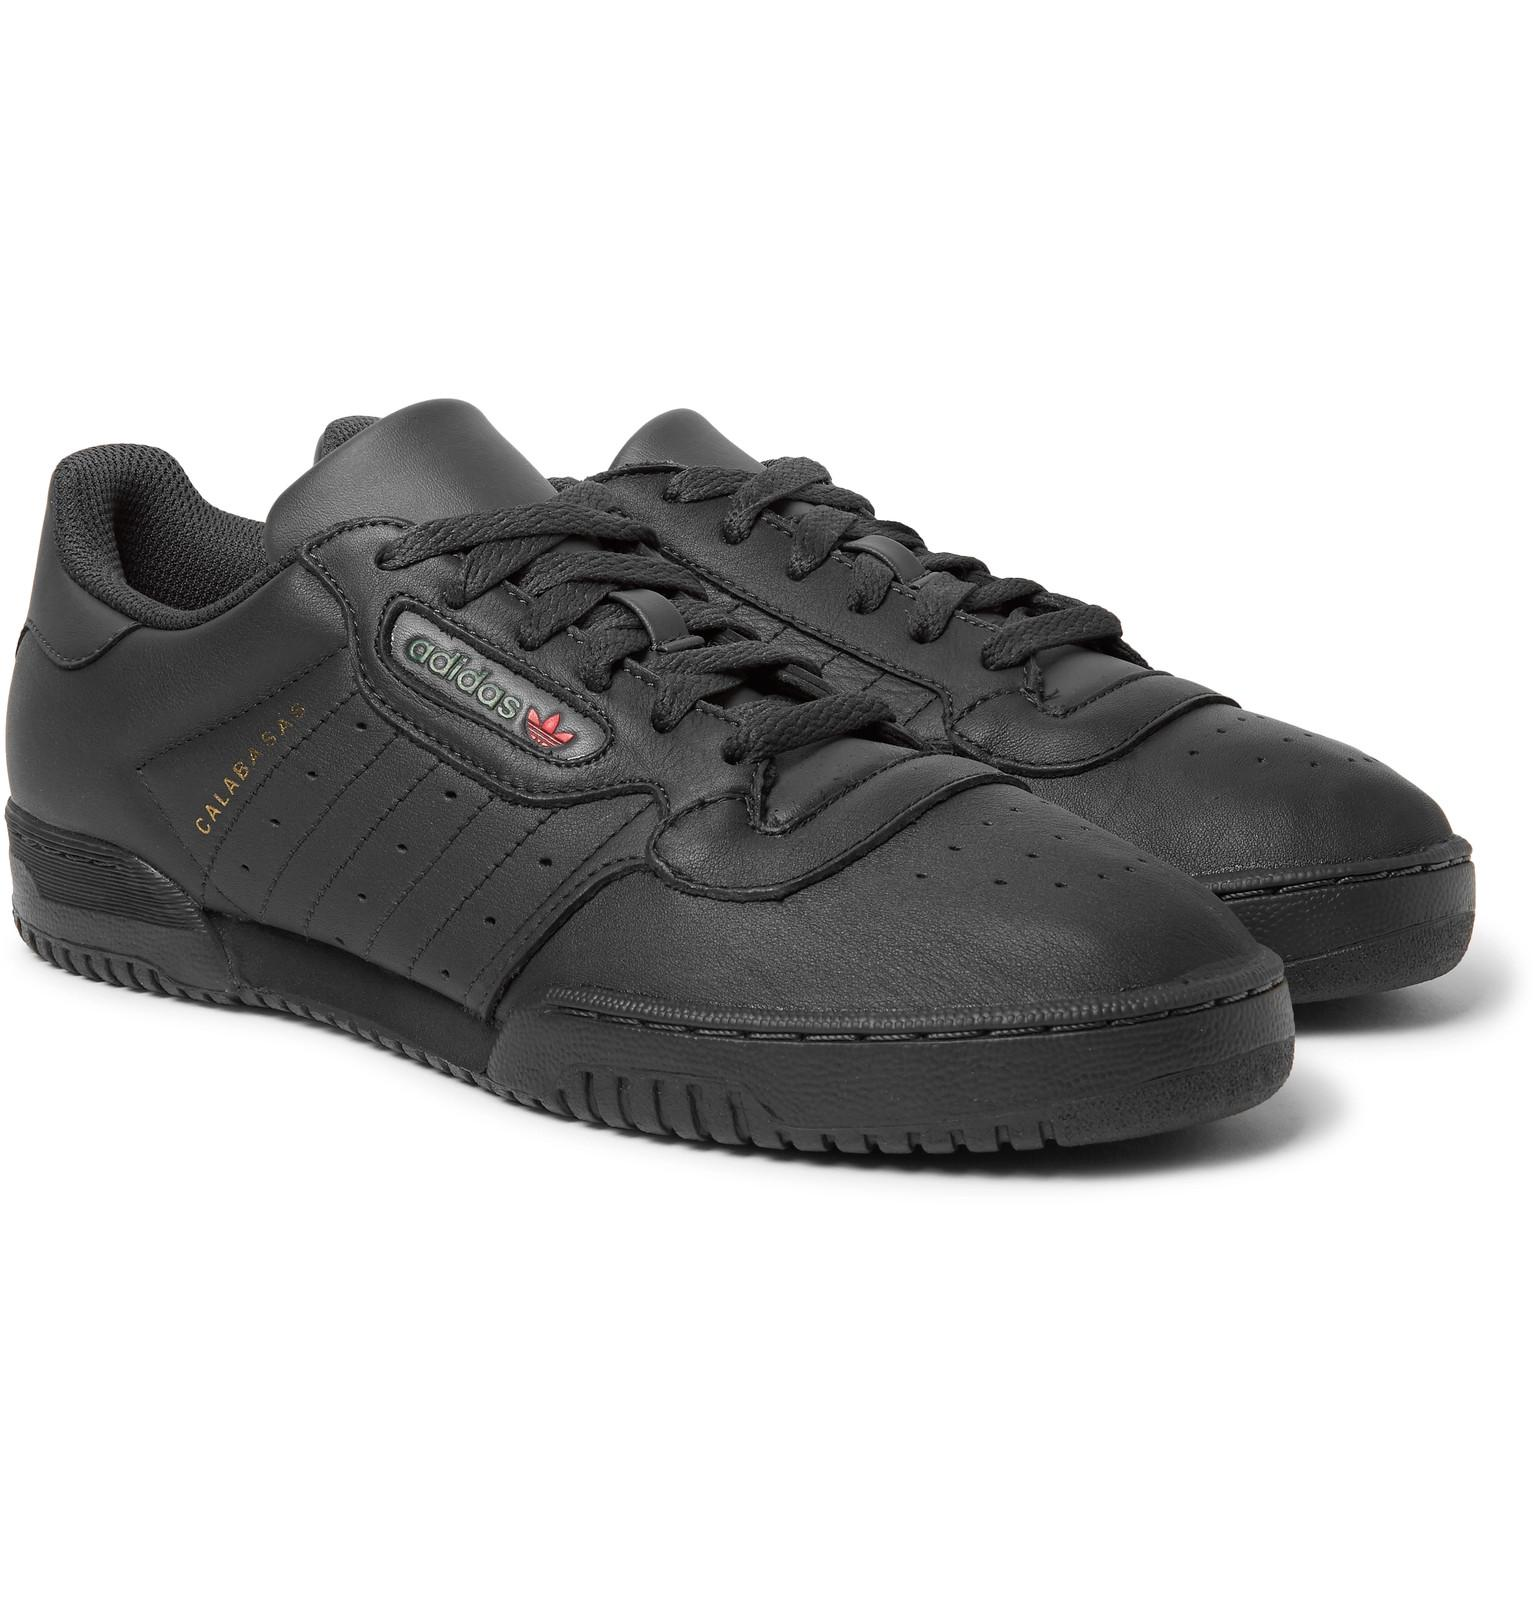 detailed look d7215 a49b7 adidas Originals Yeezy Powerphase Calabasas Leather Sneakers in ...